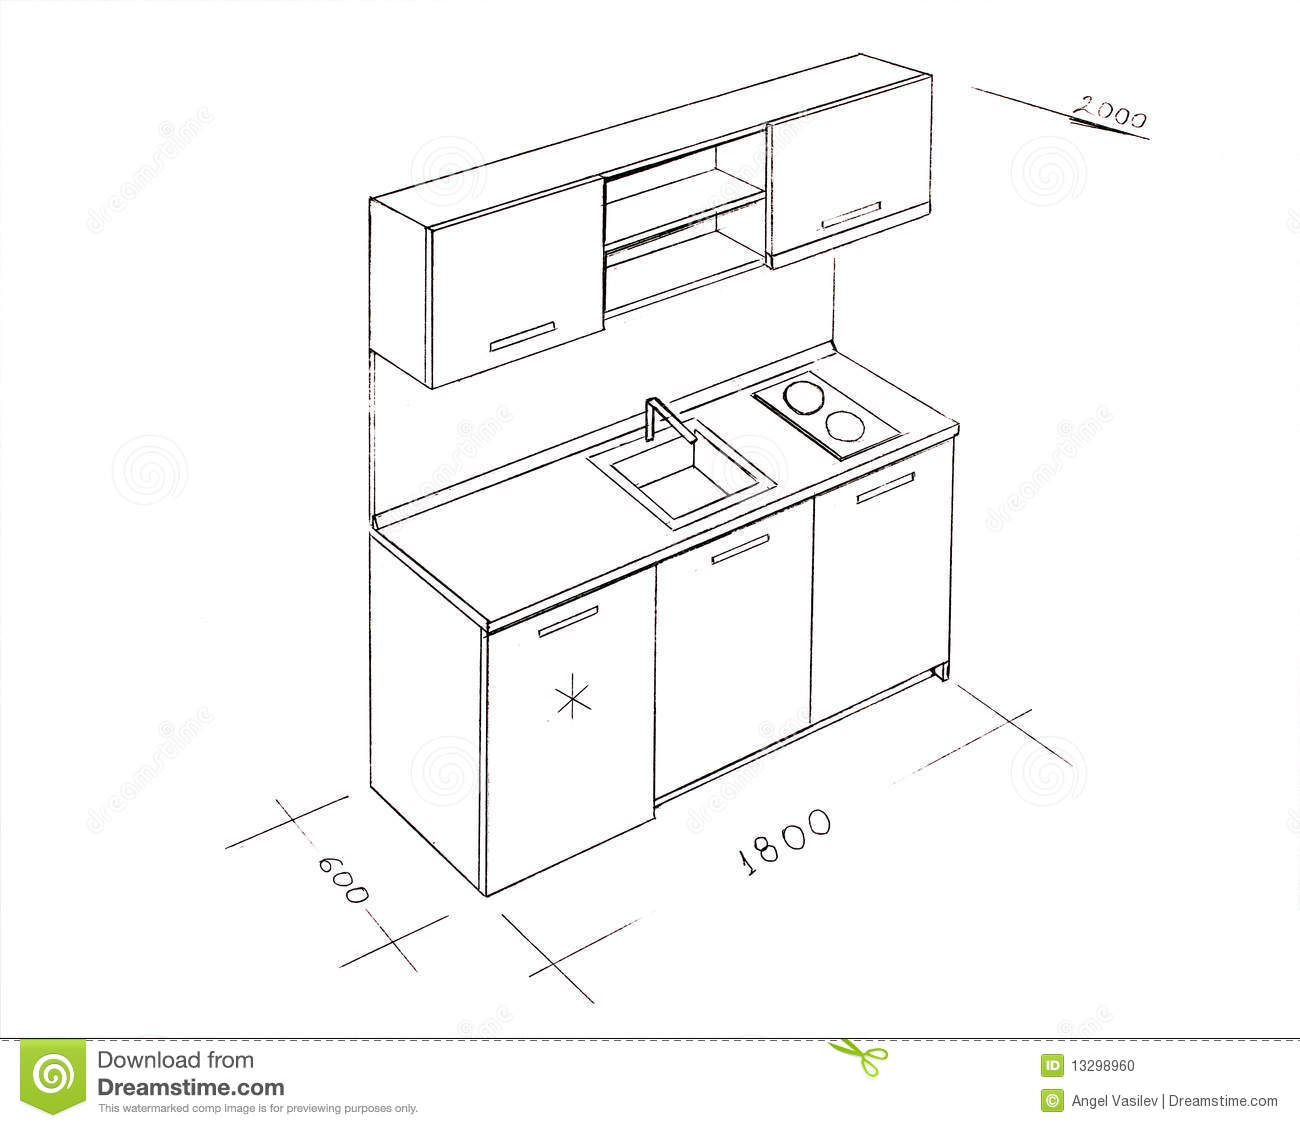 Design Drawing Drawn Freehand Furniture Hand Illustration Interior Isolated Kitchen